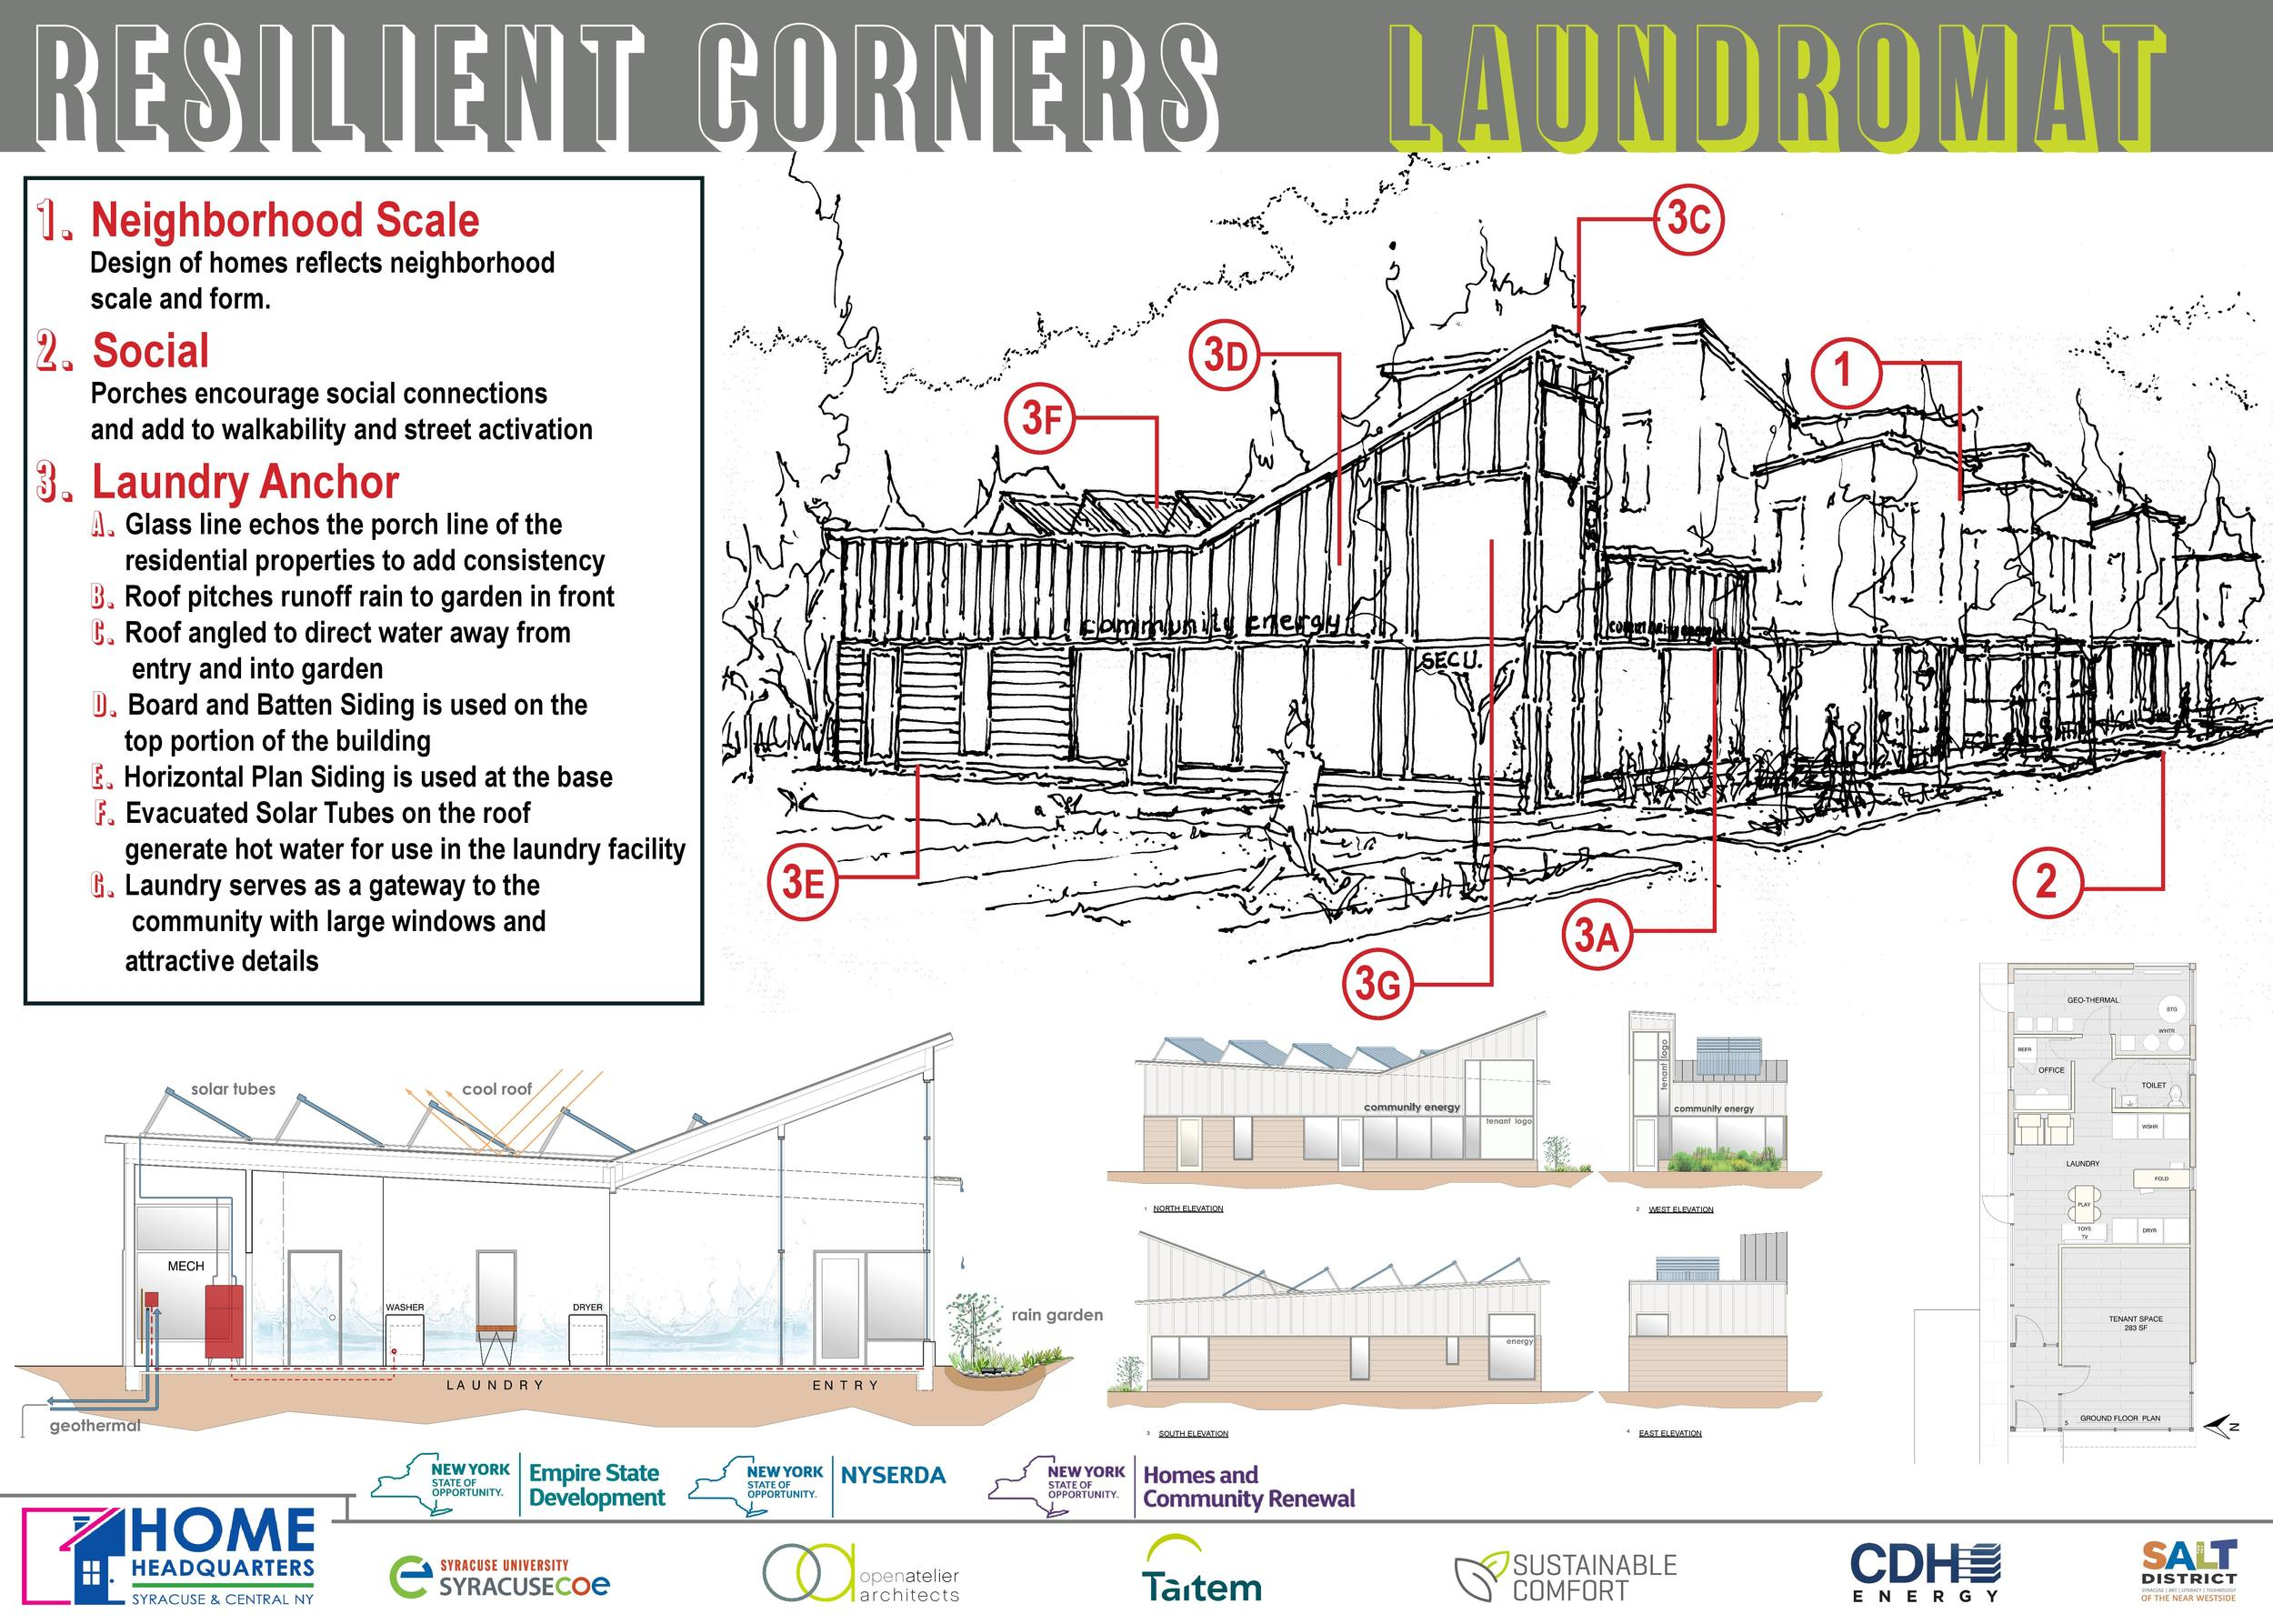 Resilient Corners Board Laundry Final (1)-page-001.jpg